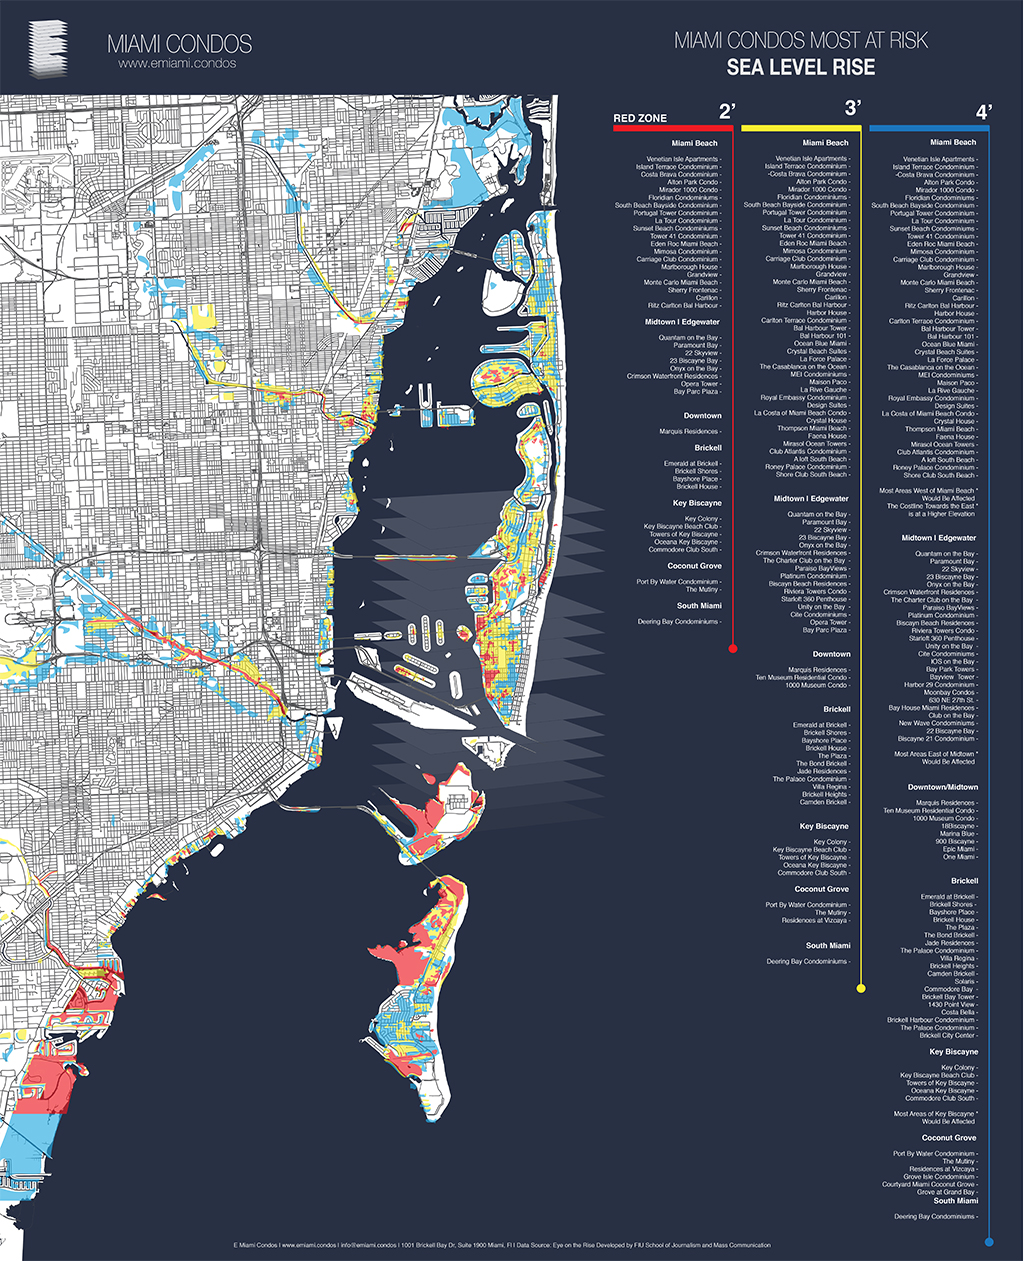 sea level rise map florida with Which Miami Condo Towers Will Be Most Affected By Sea Level Rise Map on Which Miami Condo Towers Will Be Most Affected By Sea Level Rise Map together with Sea Level Change Global Warming in addition Consequences Of Climate Change For The Caribbean likewise Maps also Figure3.